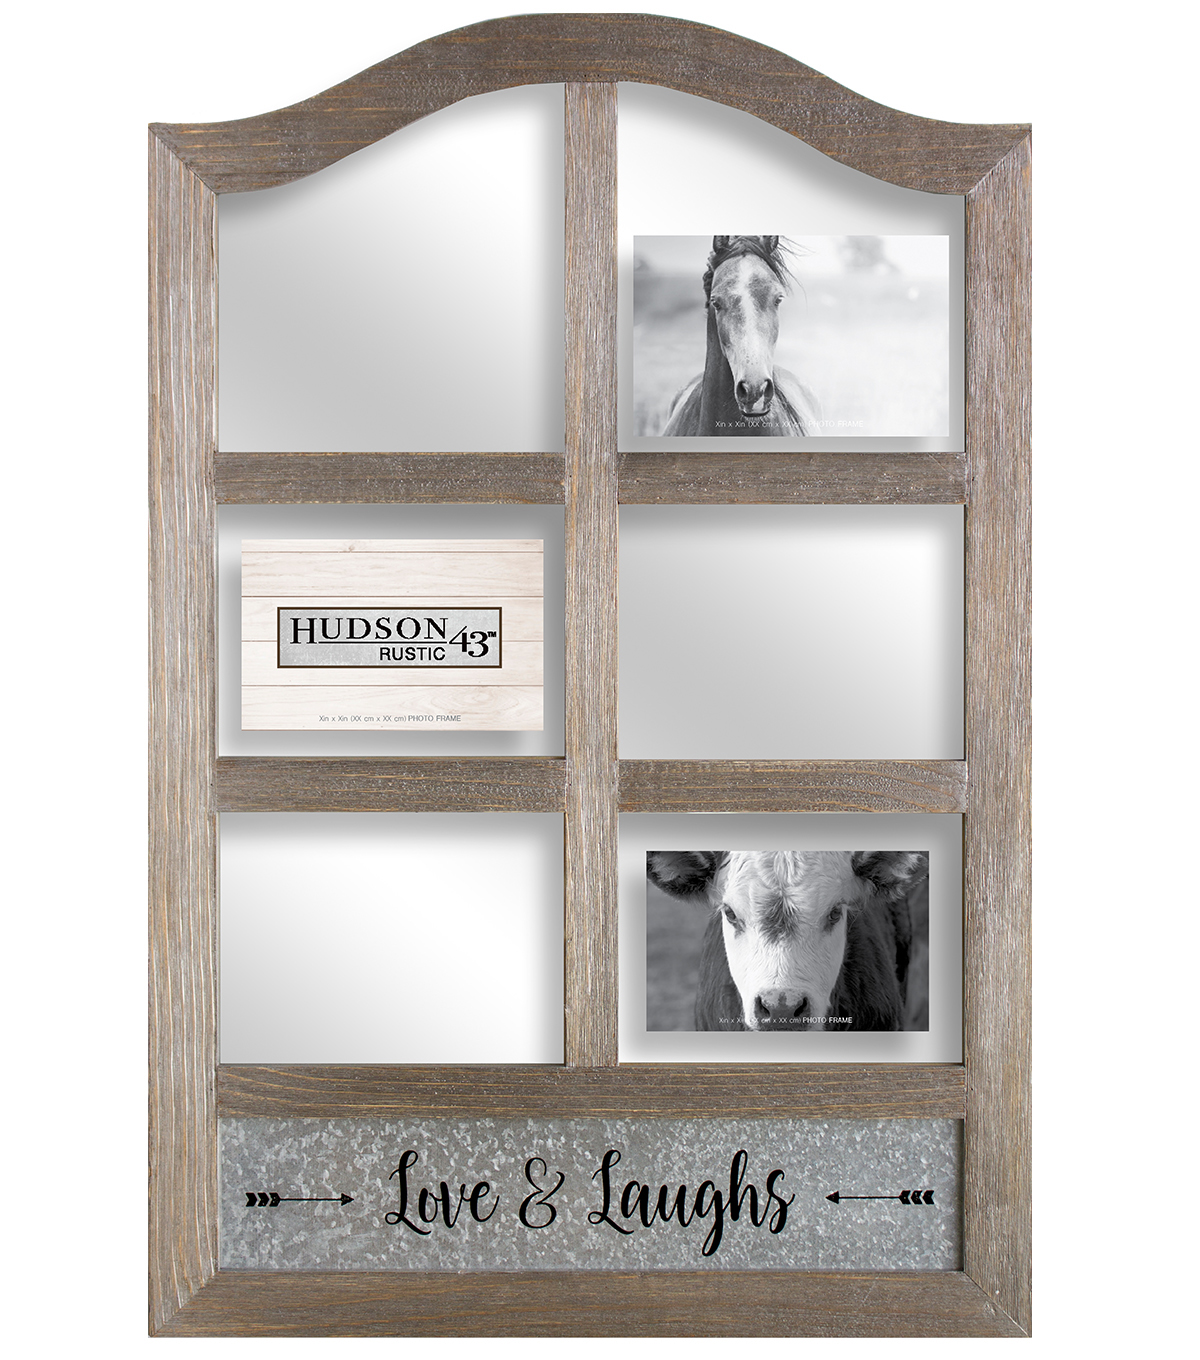 Hudson 43 Rustic Six Opening Photo Collage Frame | JOANN